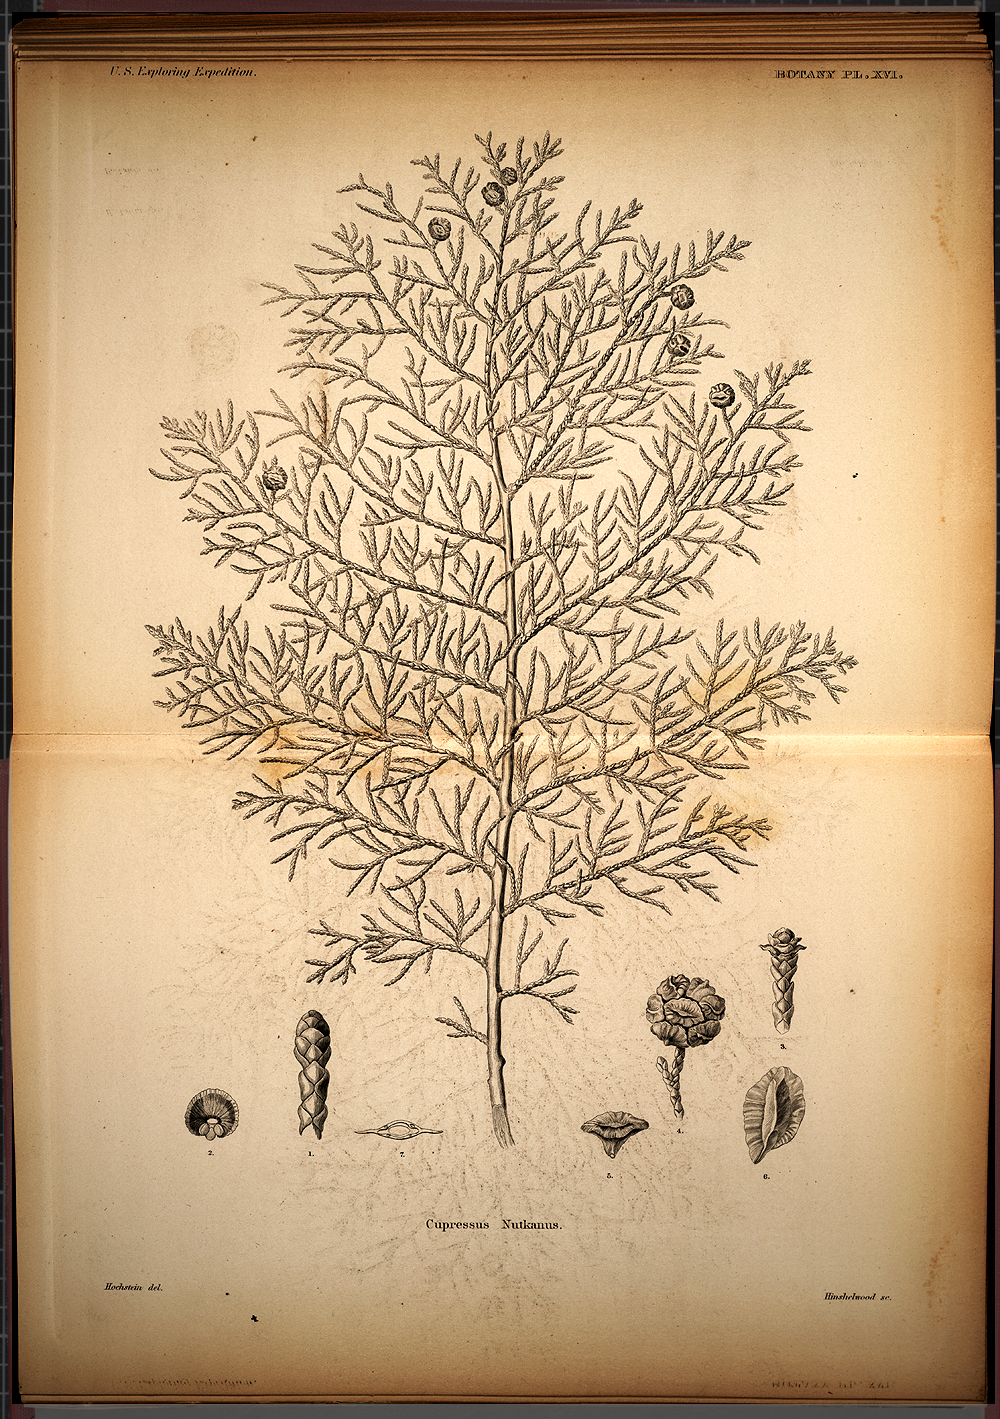 Botany, Plate XVI,  Image number:SIL19-28-055